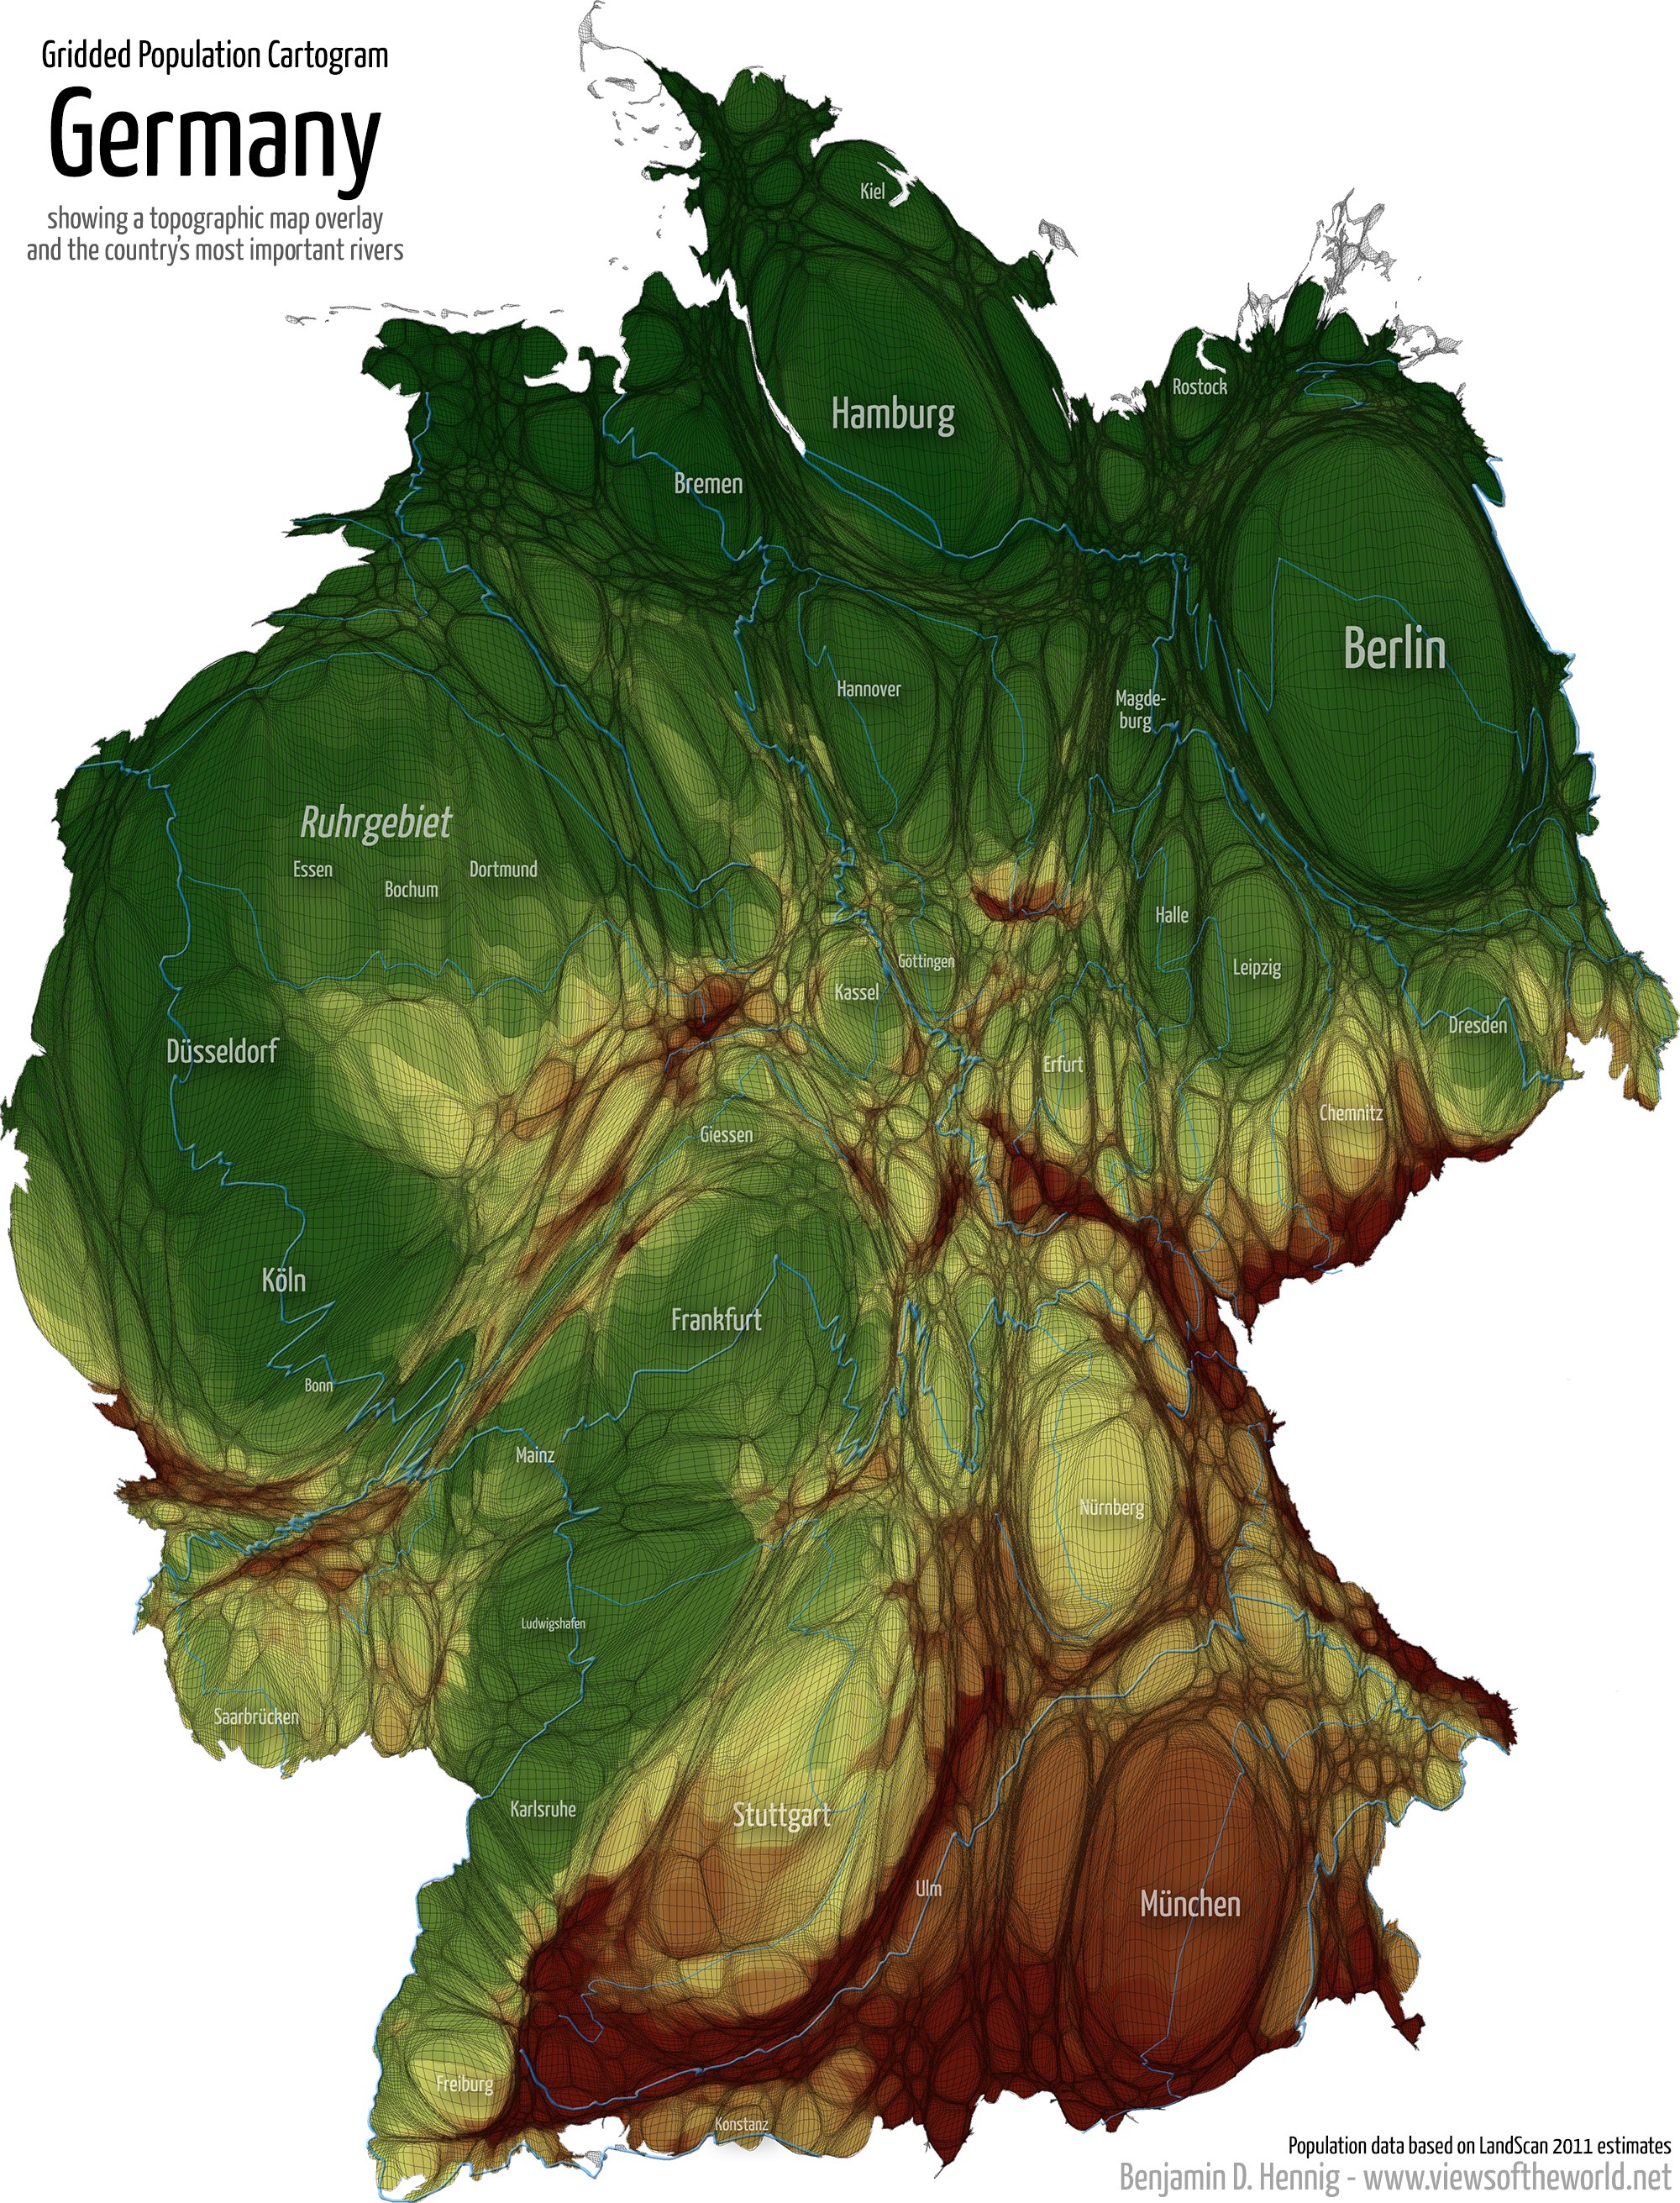 equal population projection map of germany